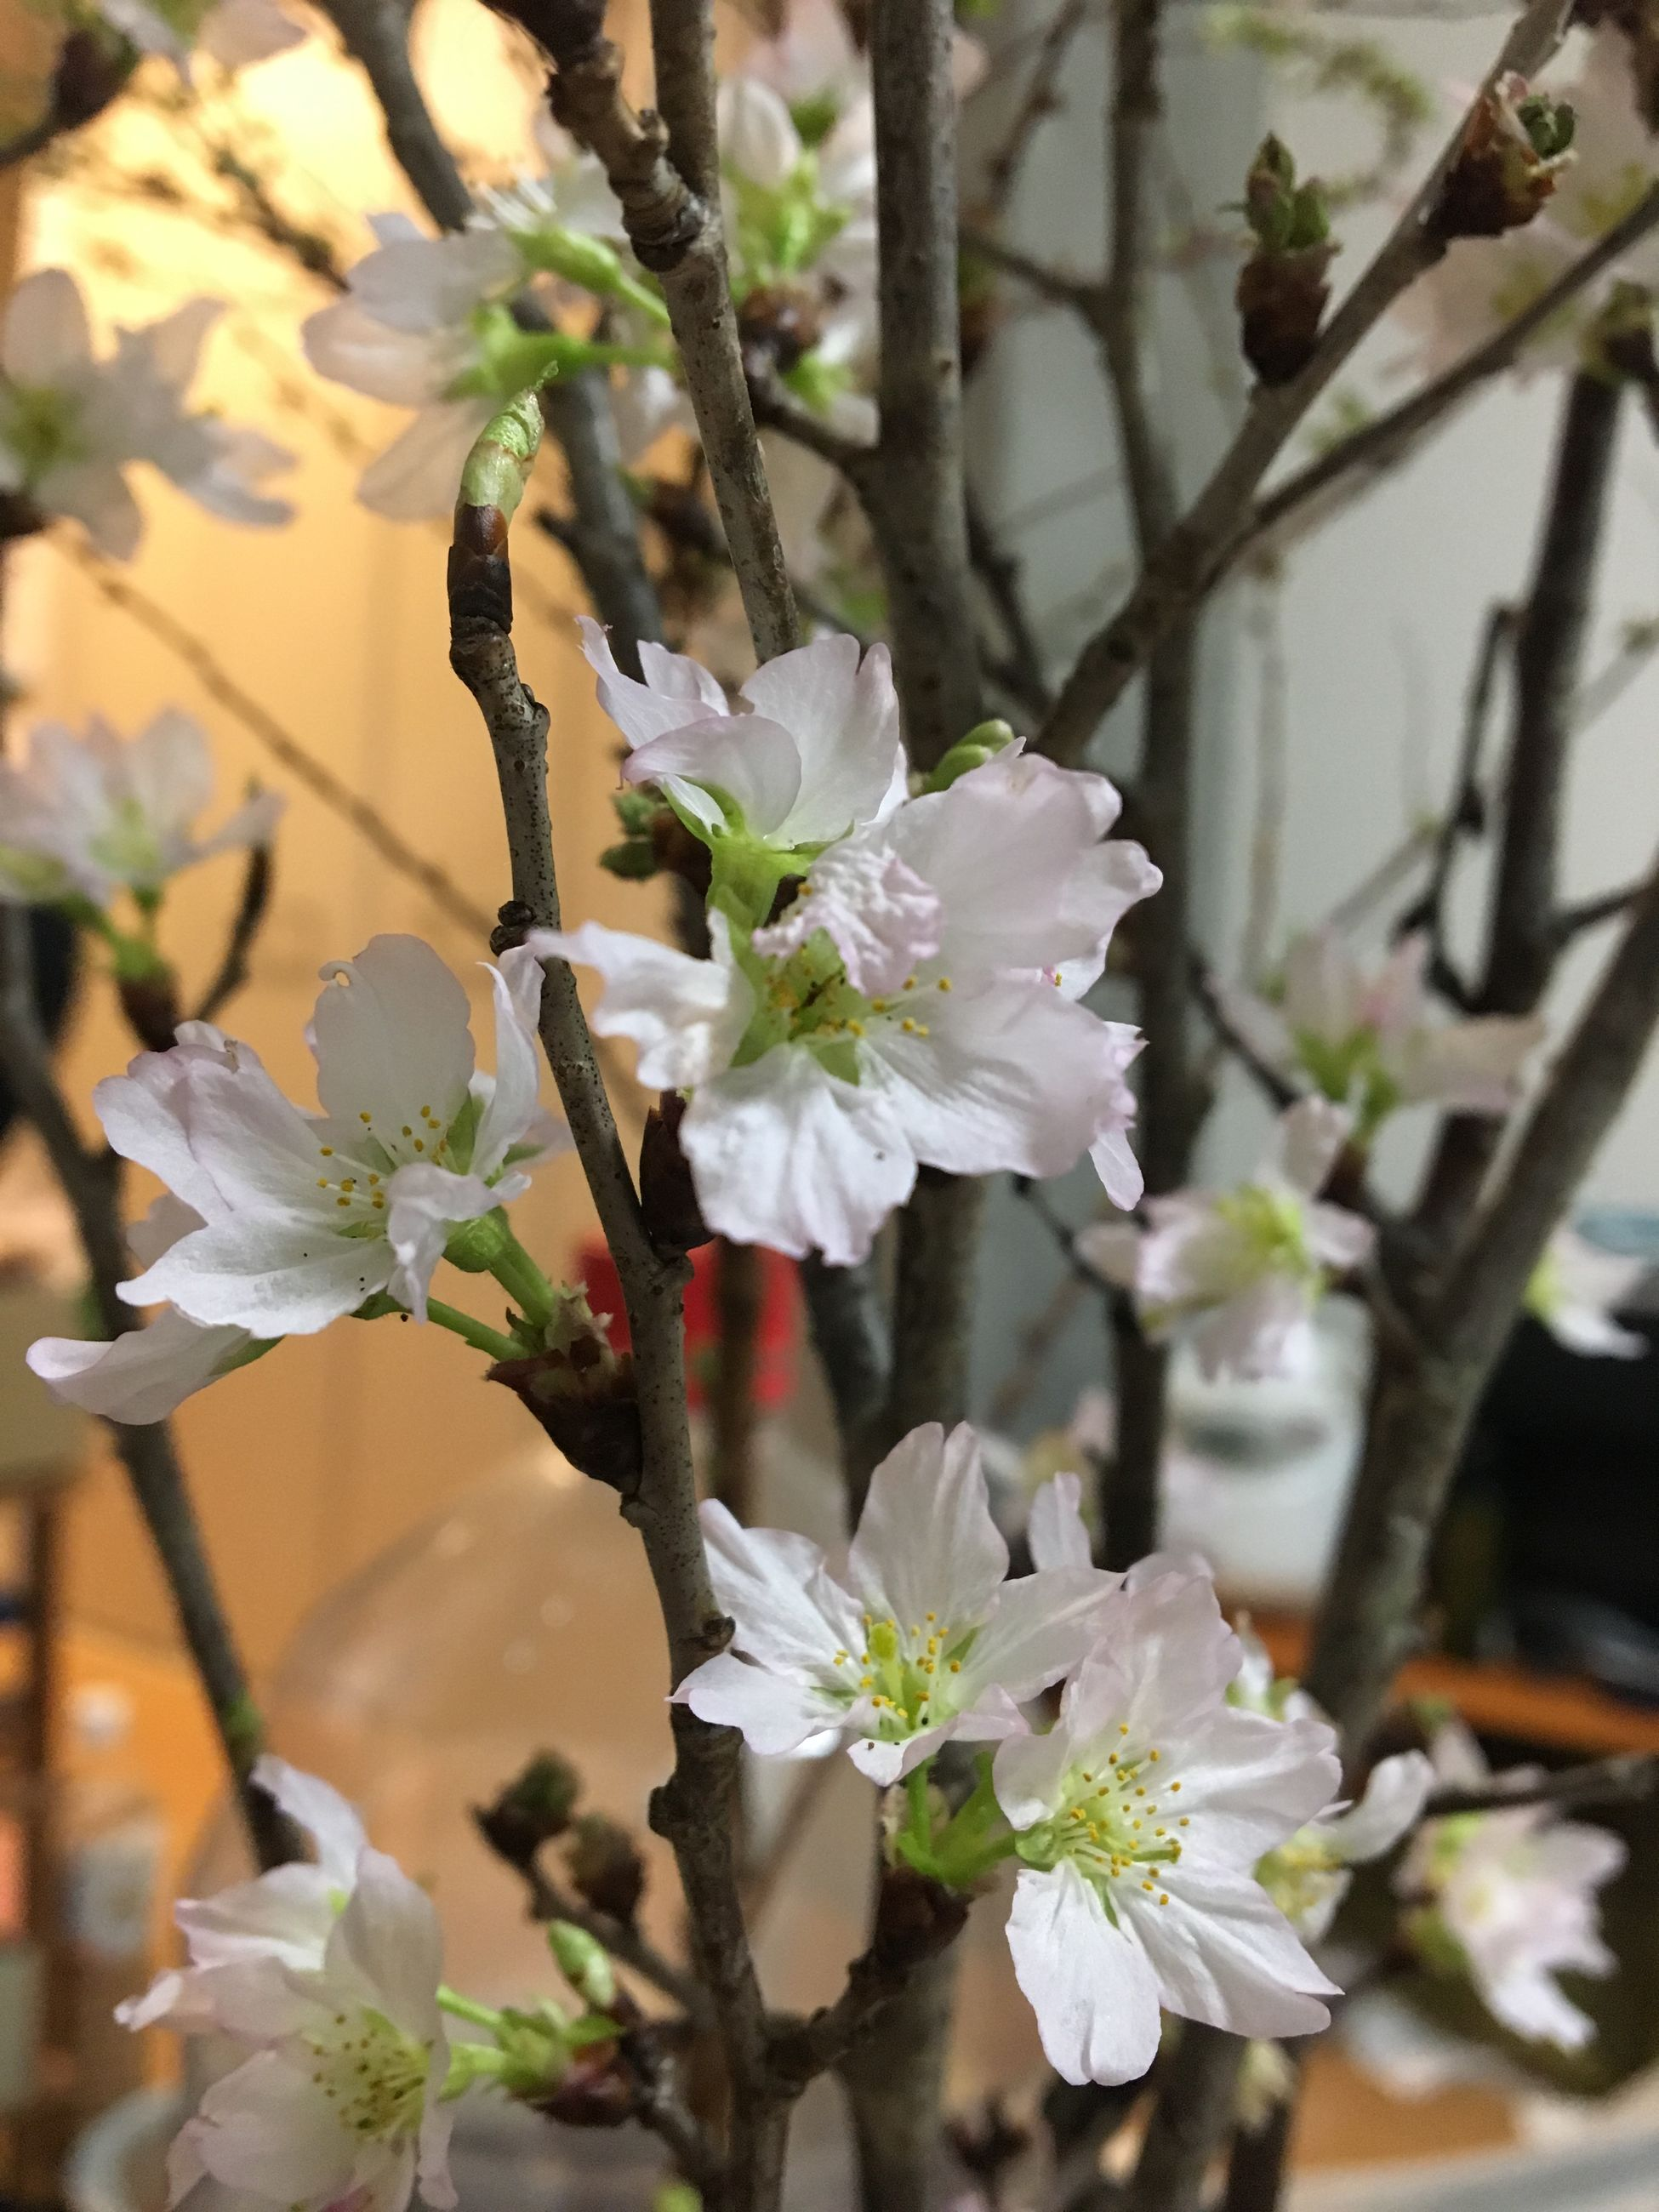 flowering plant, flower, plant, beauty in nature, fragility, vulnerability, freshness, growth, close-up, petal, focus on foreground, white color, nature, no people, tree, day, flower head, inflorescence, springtime, outdoors, pollen, cherry blossom